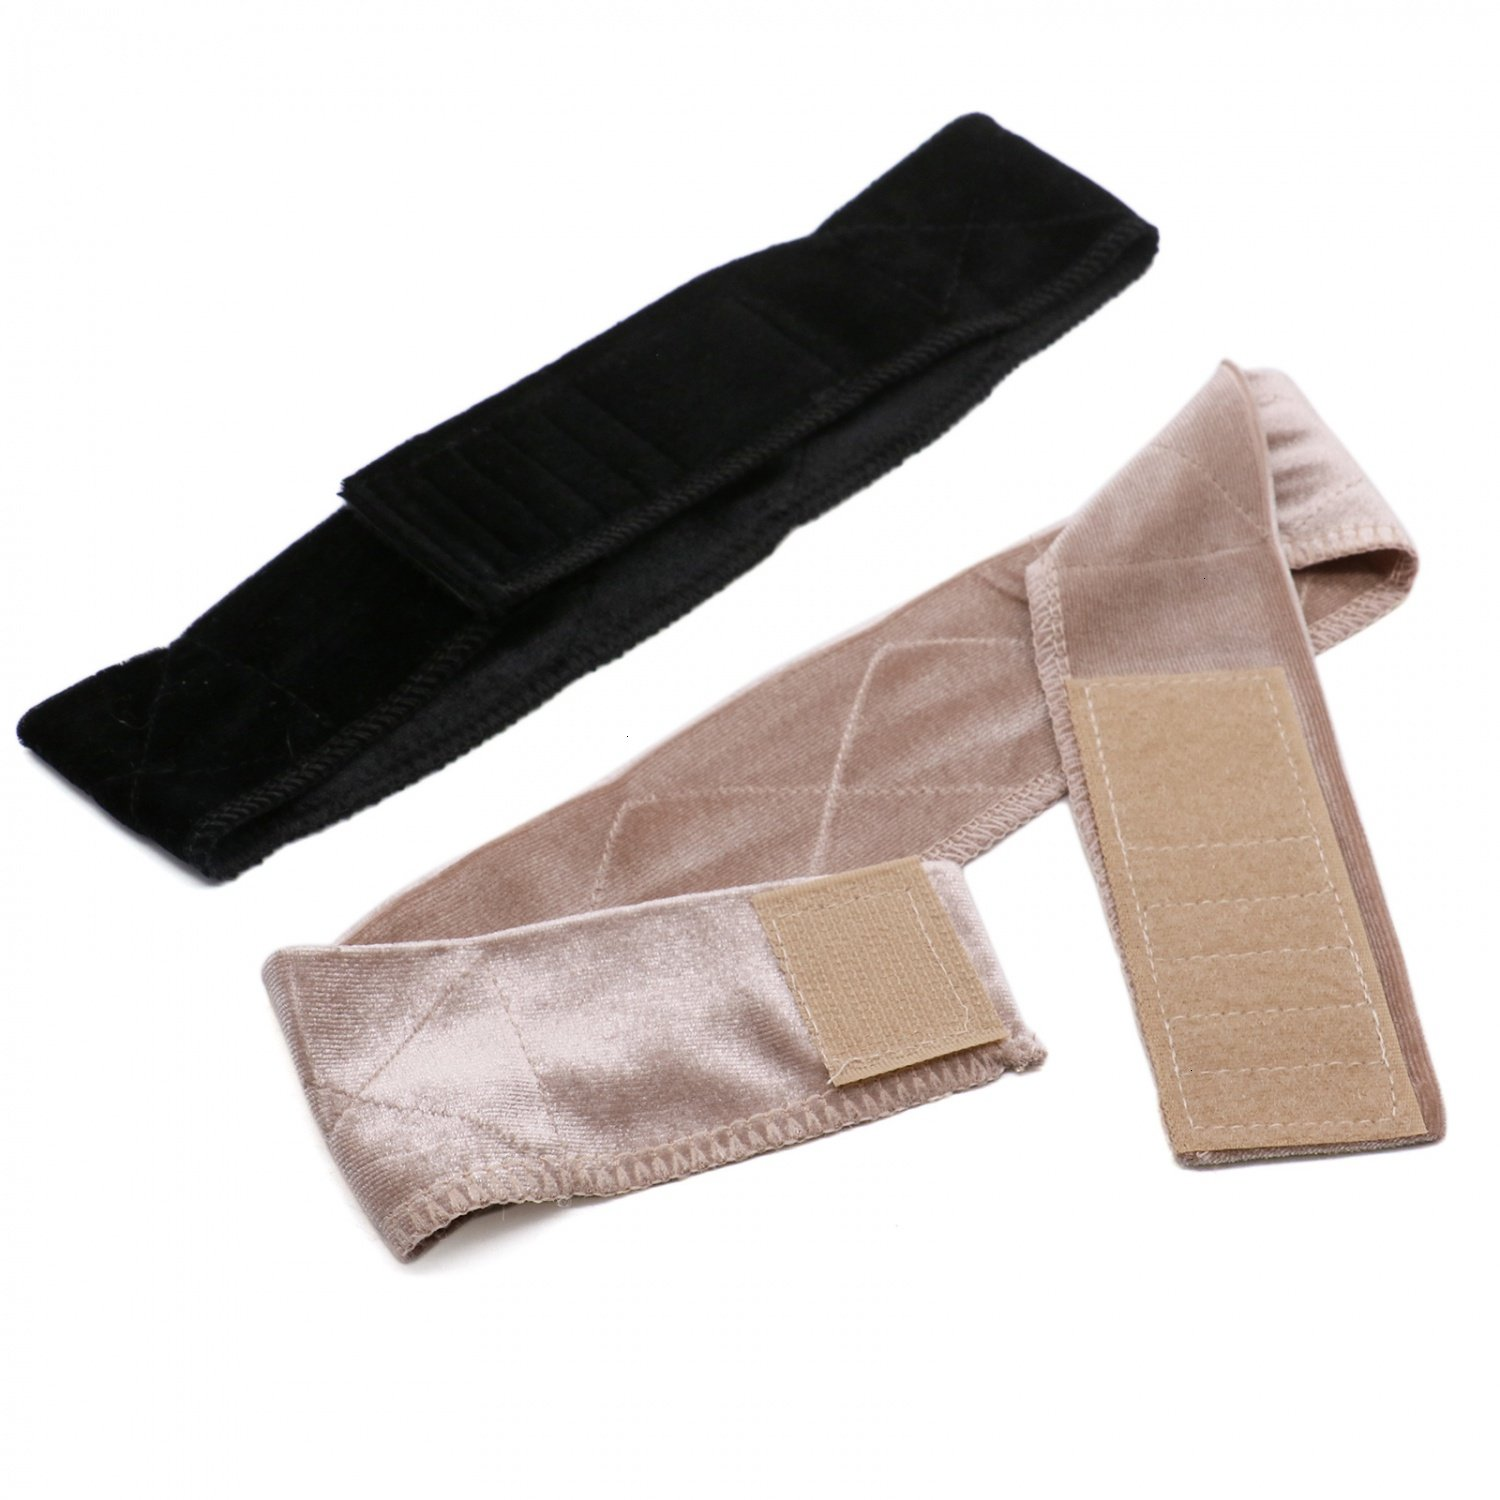 Pack Of 2 Velvet Wig Grip Band Adjustable Head Hair Band By IDS IDS Manufacturer